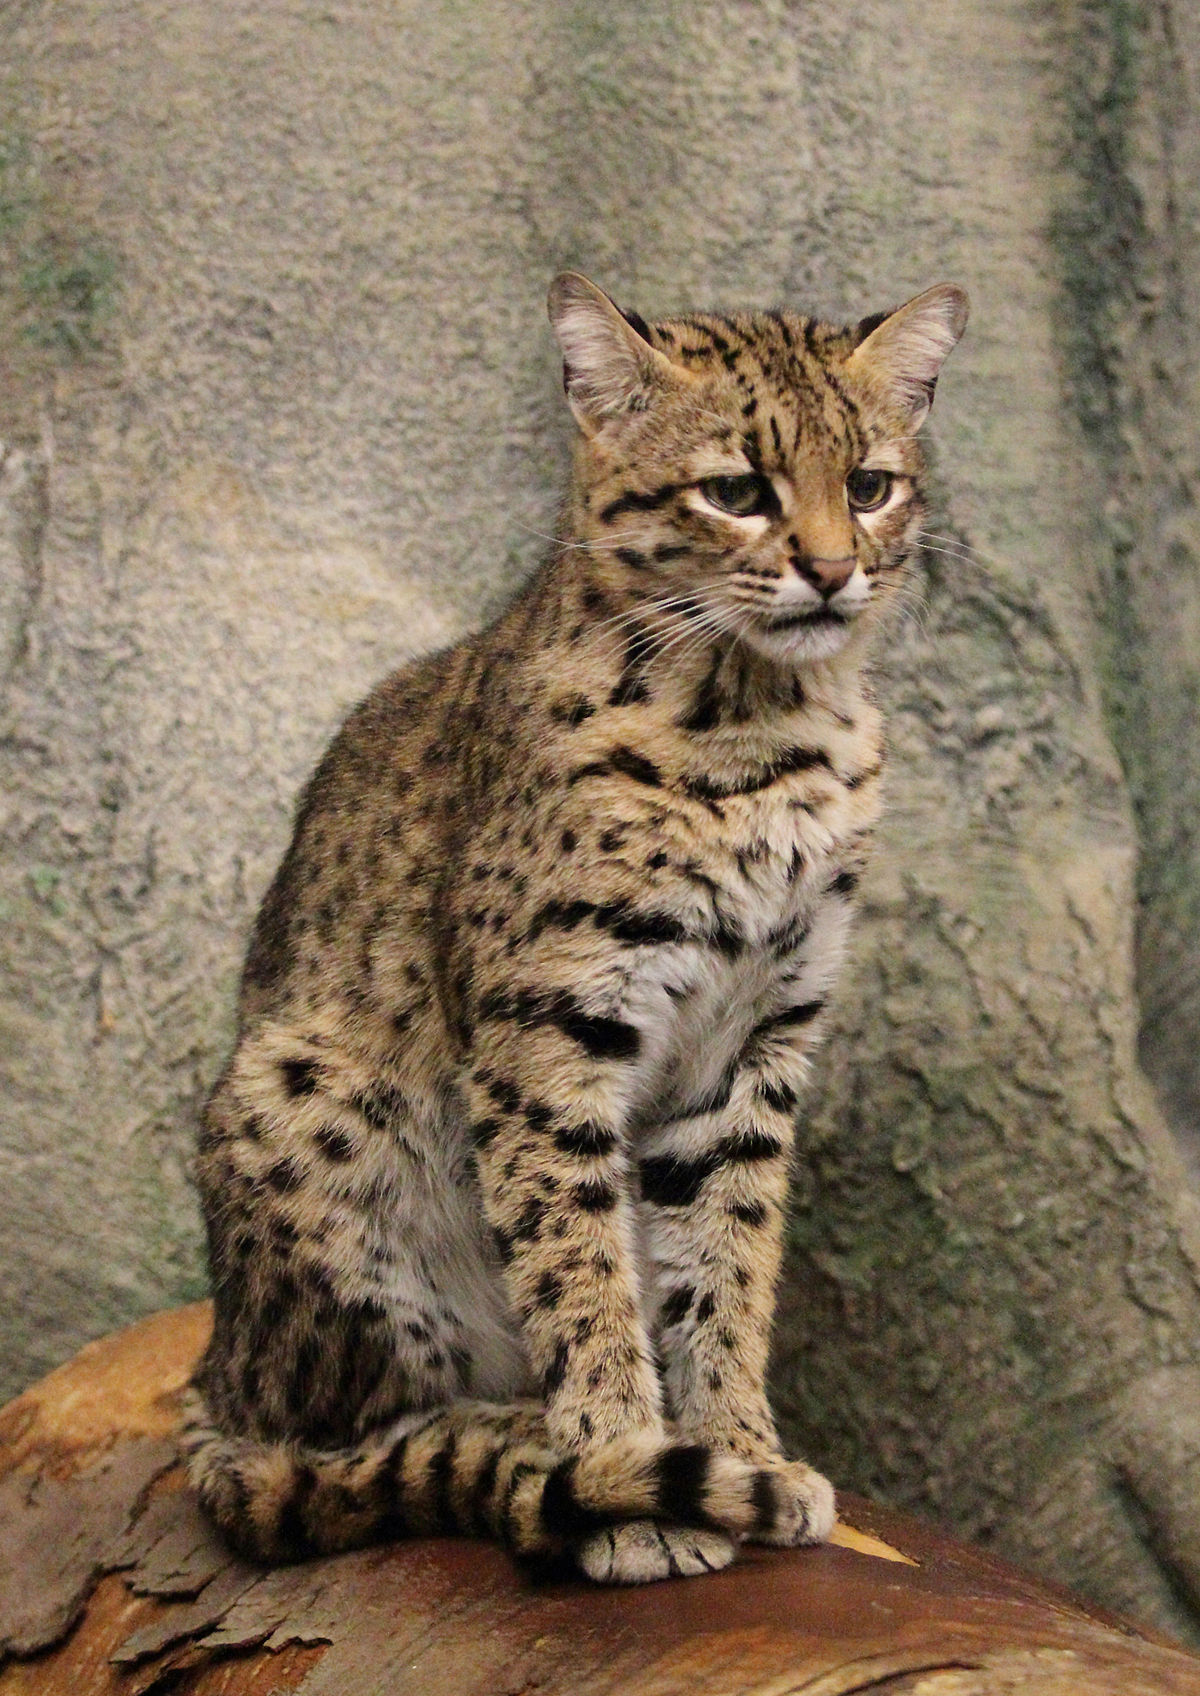 Geoffroy (cat): photo and description 28